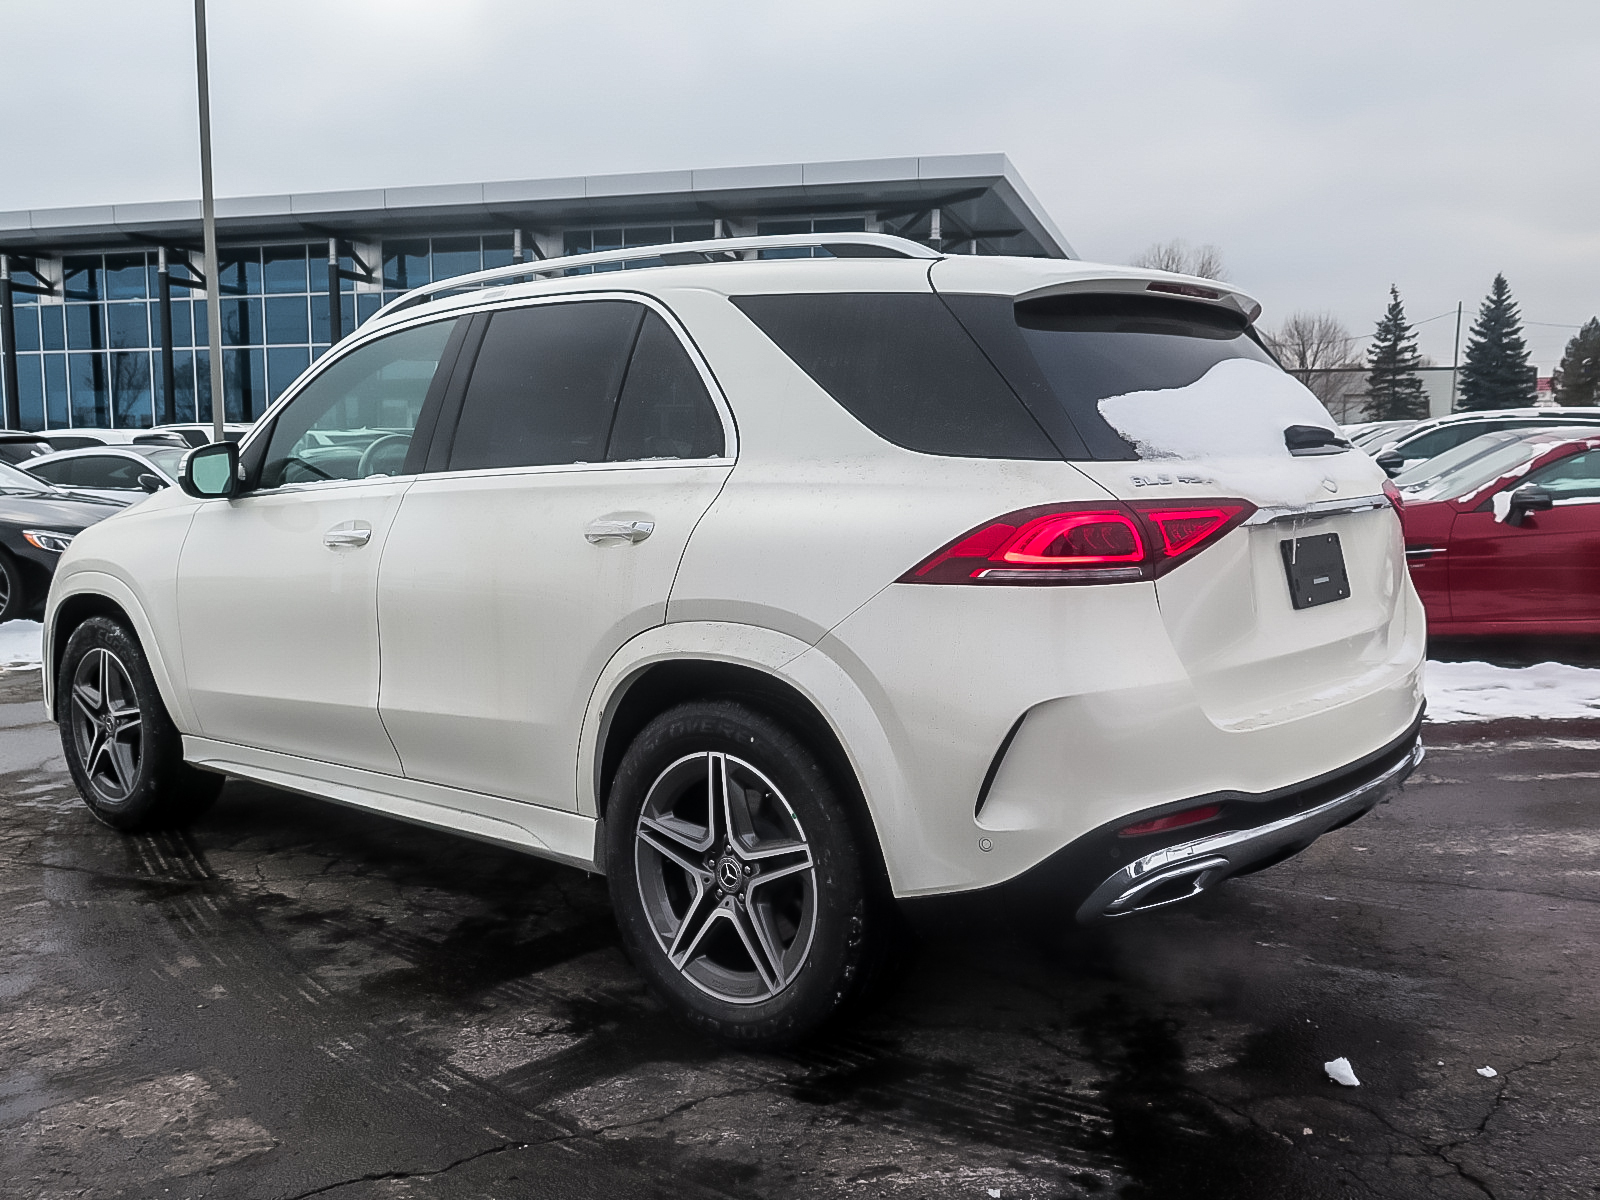 New 2020 Mercedes-Benz GLE450 4MATIC SUV